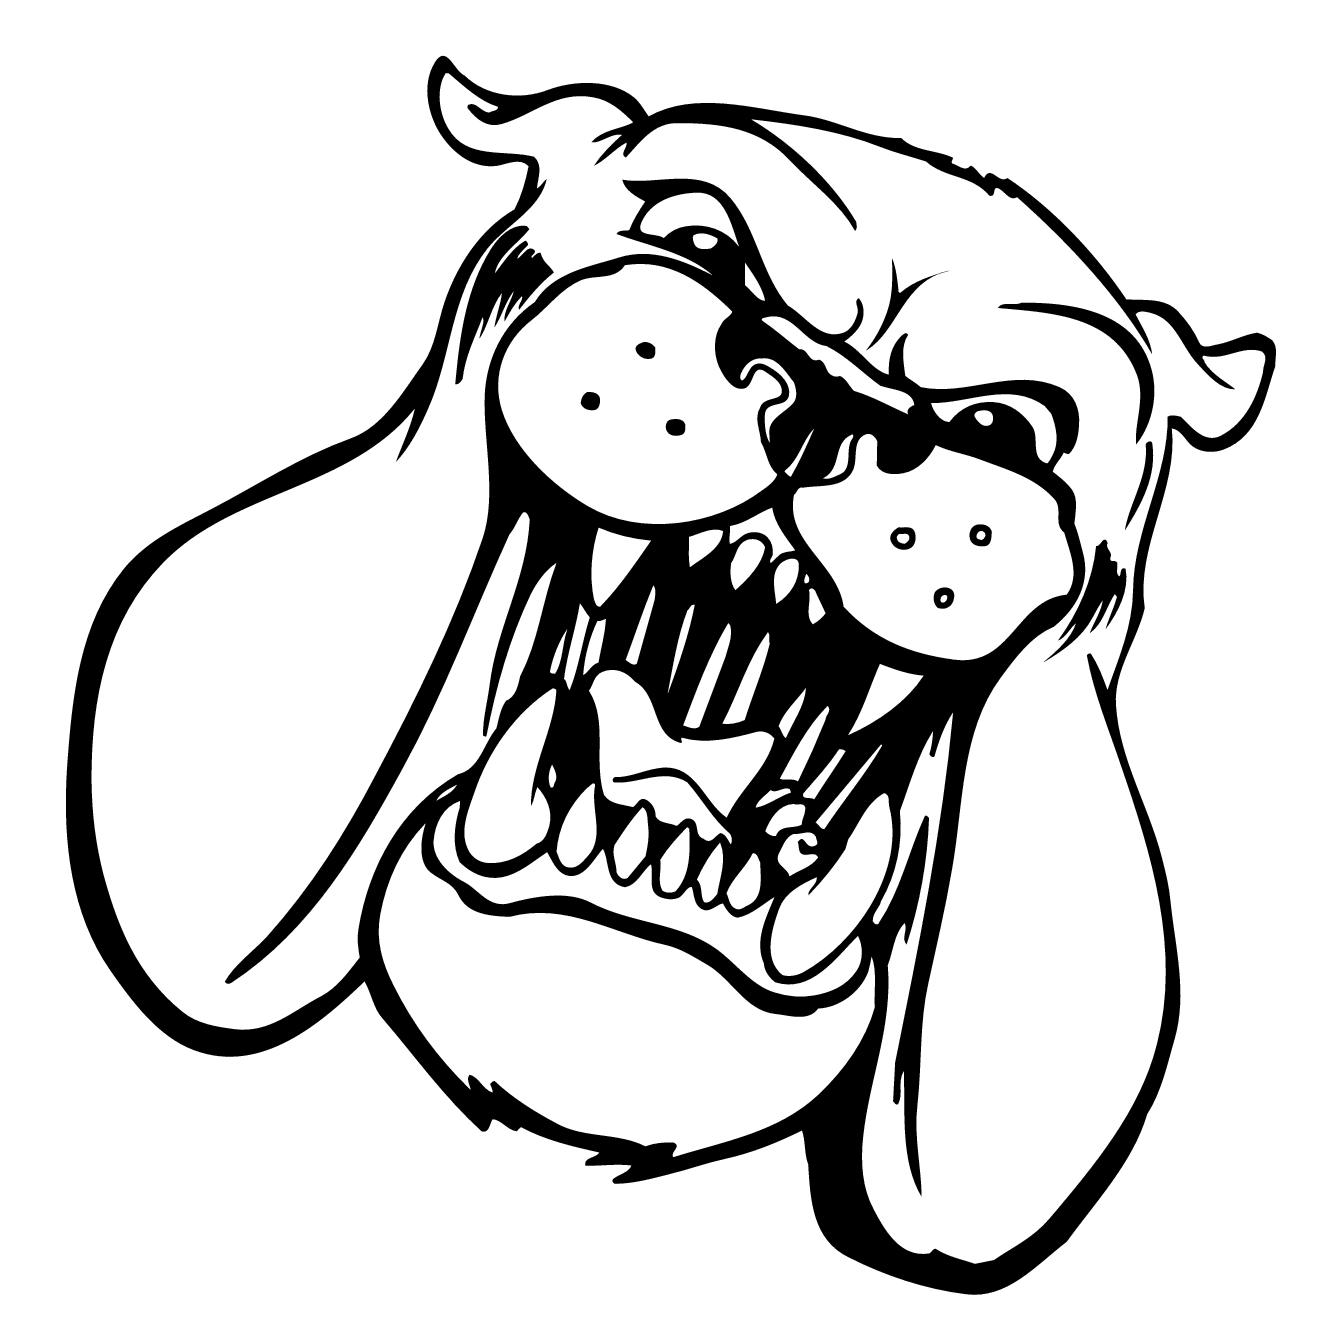 Bulldog Drawing Pictures at GetDrawings.com | Free for personal use ...